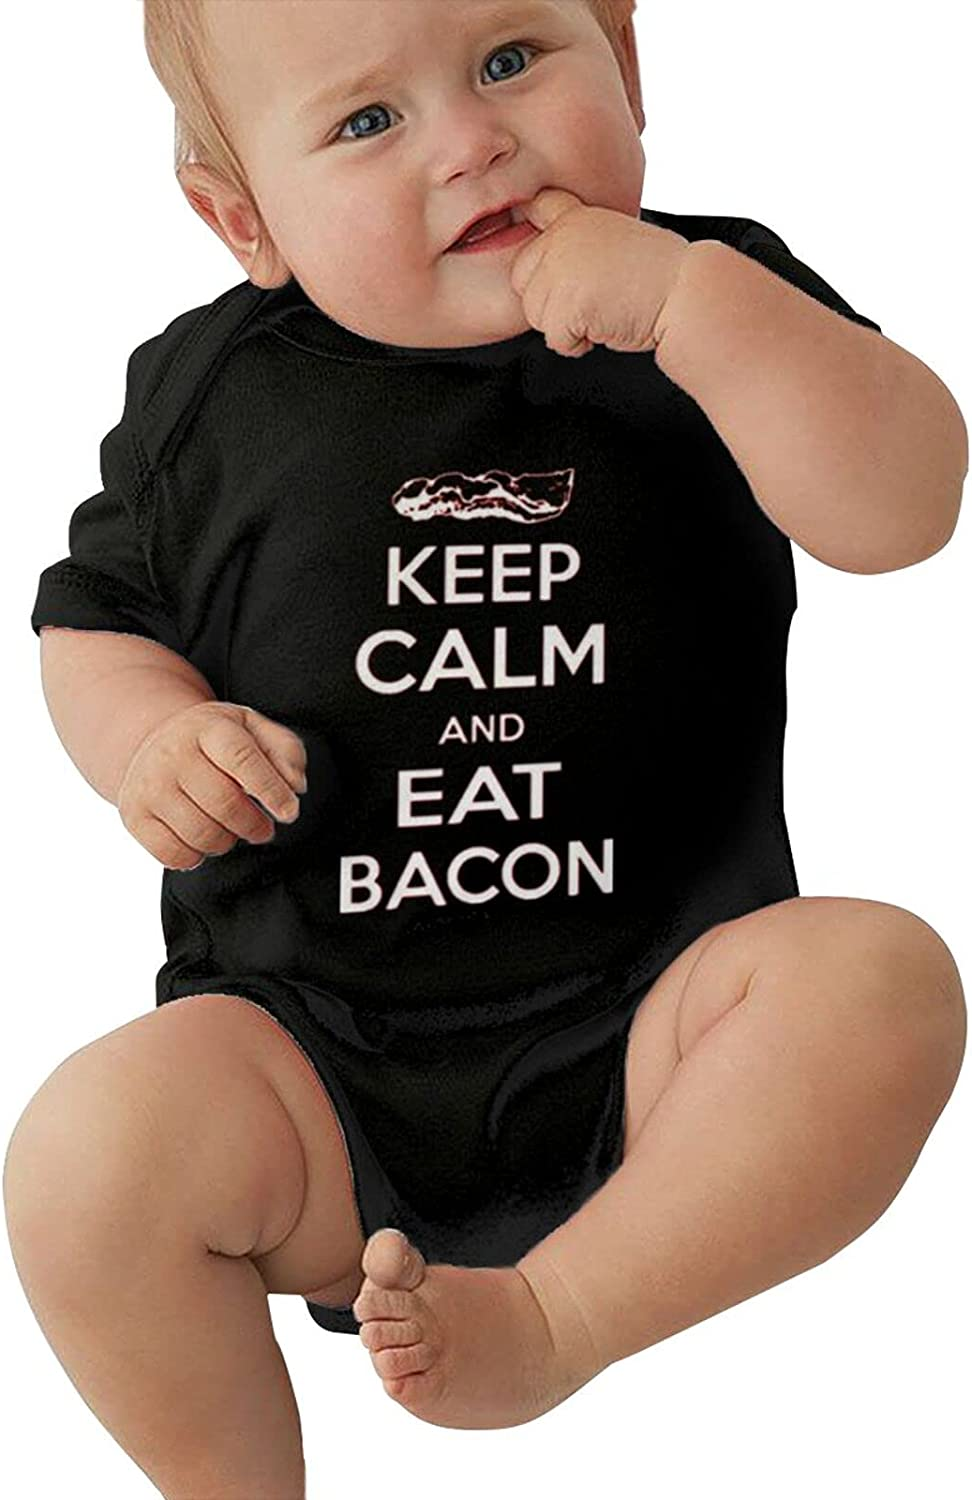 Keep Calm Eat Bacon Unisex 2021 autumn and winter new Super-cheap Baby Short Stretchy Coo Sleeve Tights